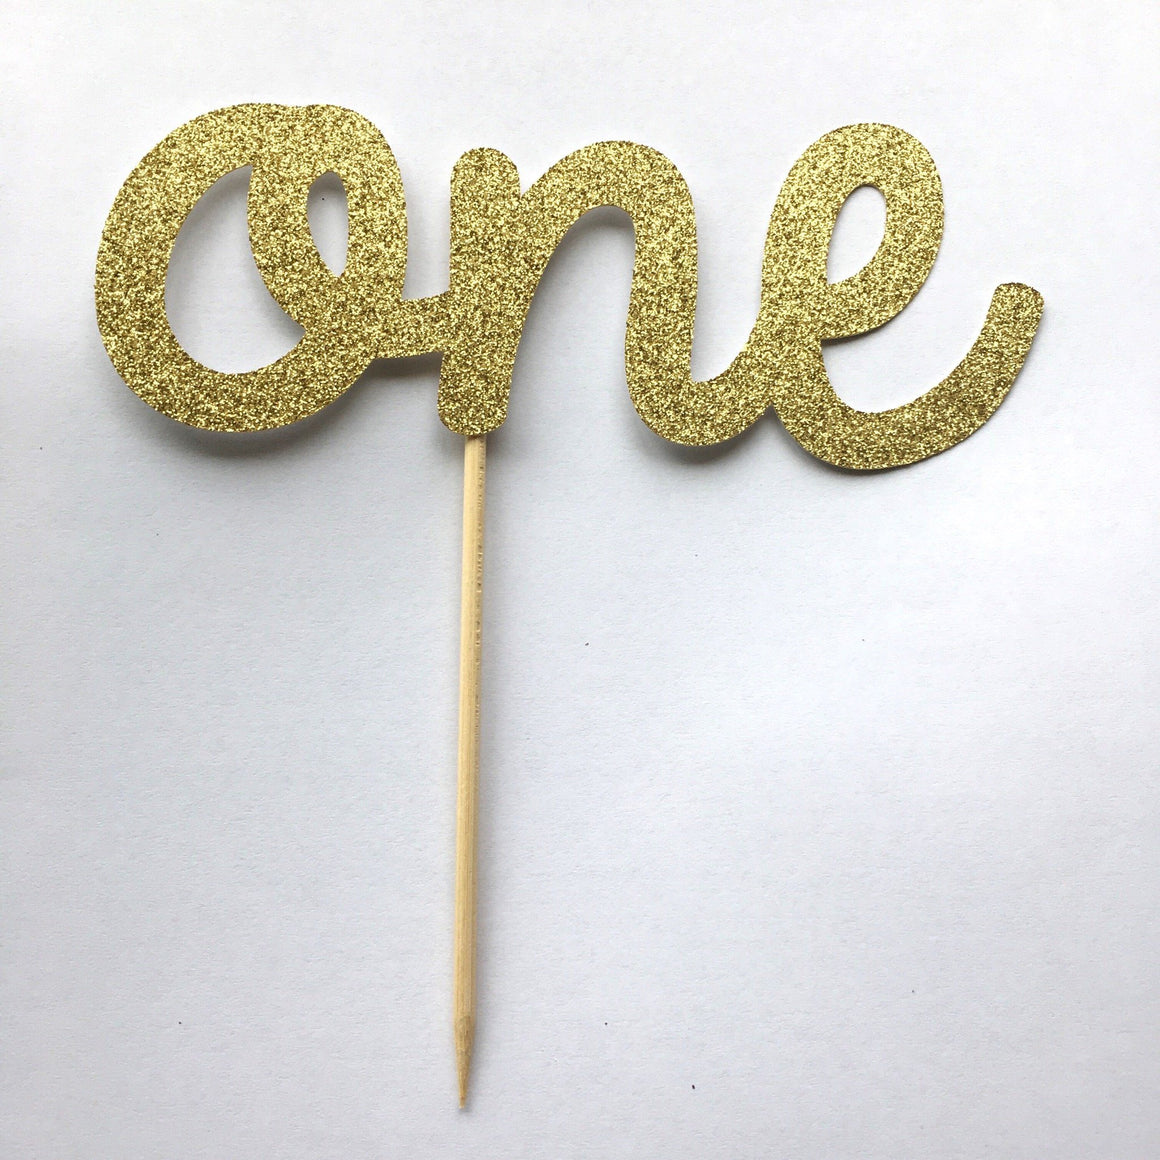 CAKE TOPPER - ONE GLITTER GOLD, Picks + Toppers, BON + CO - Bon + Co. Party Studio